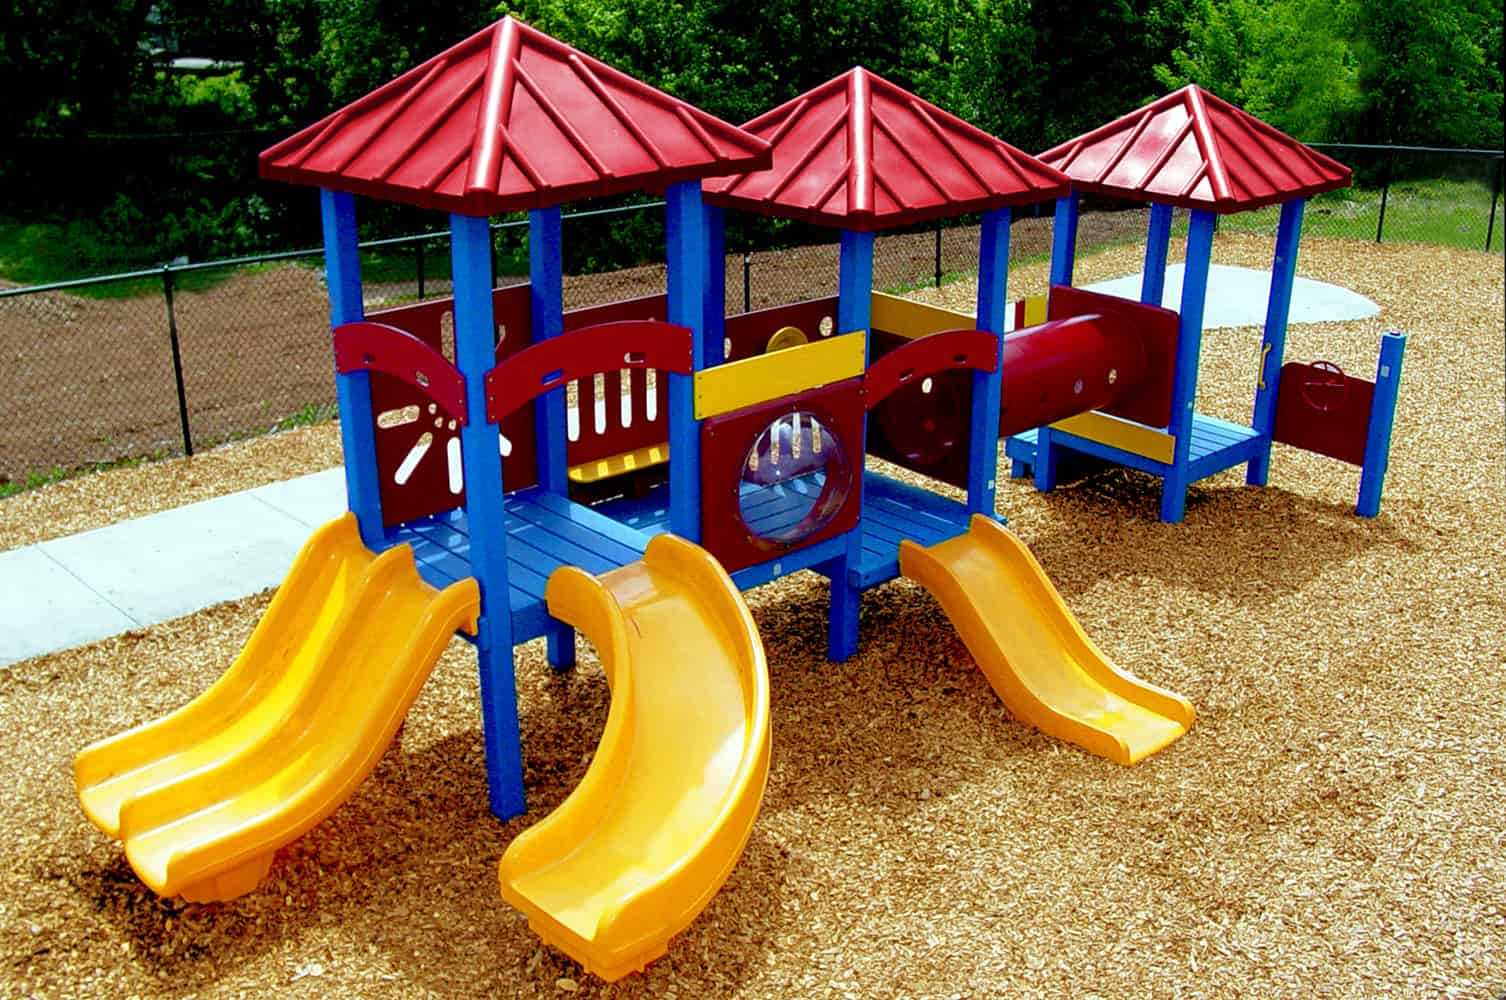 Small children's playground made with recycled plastic lumber